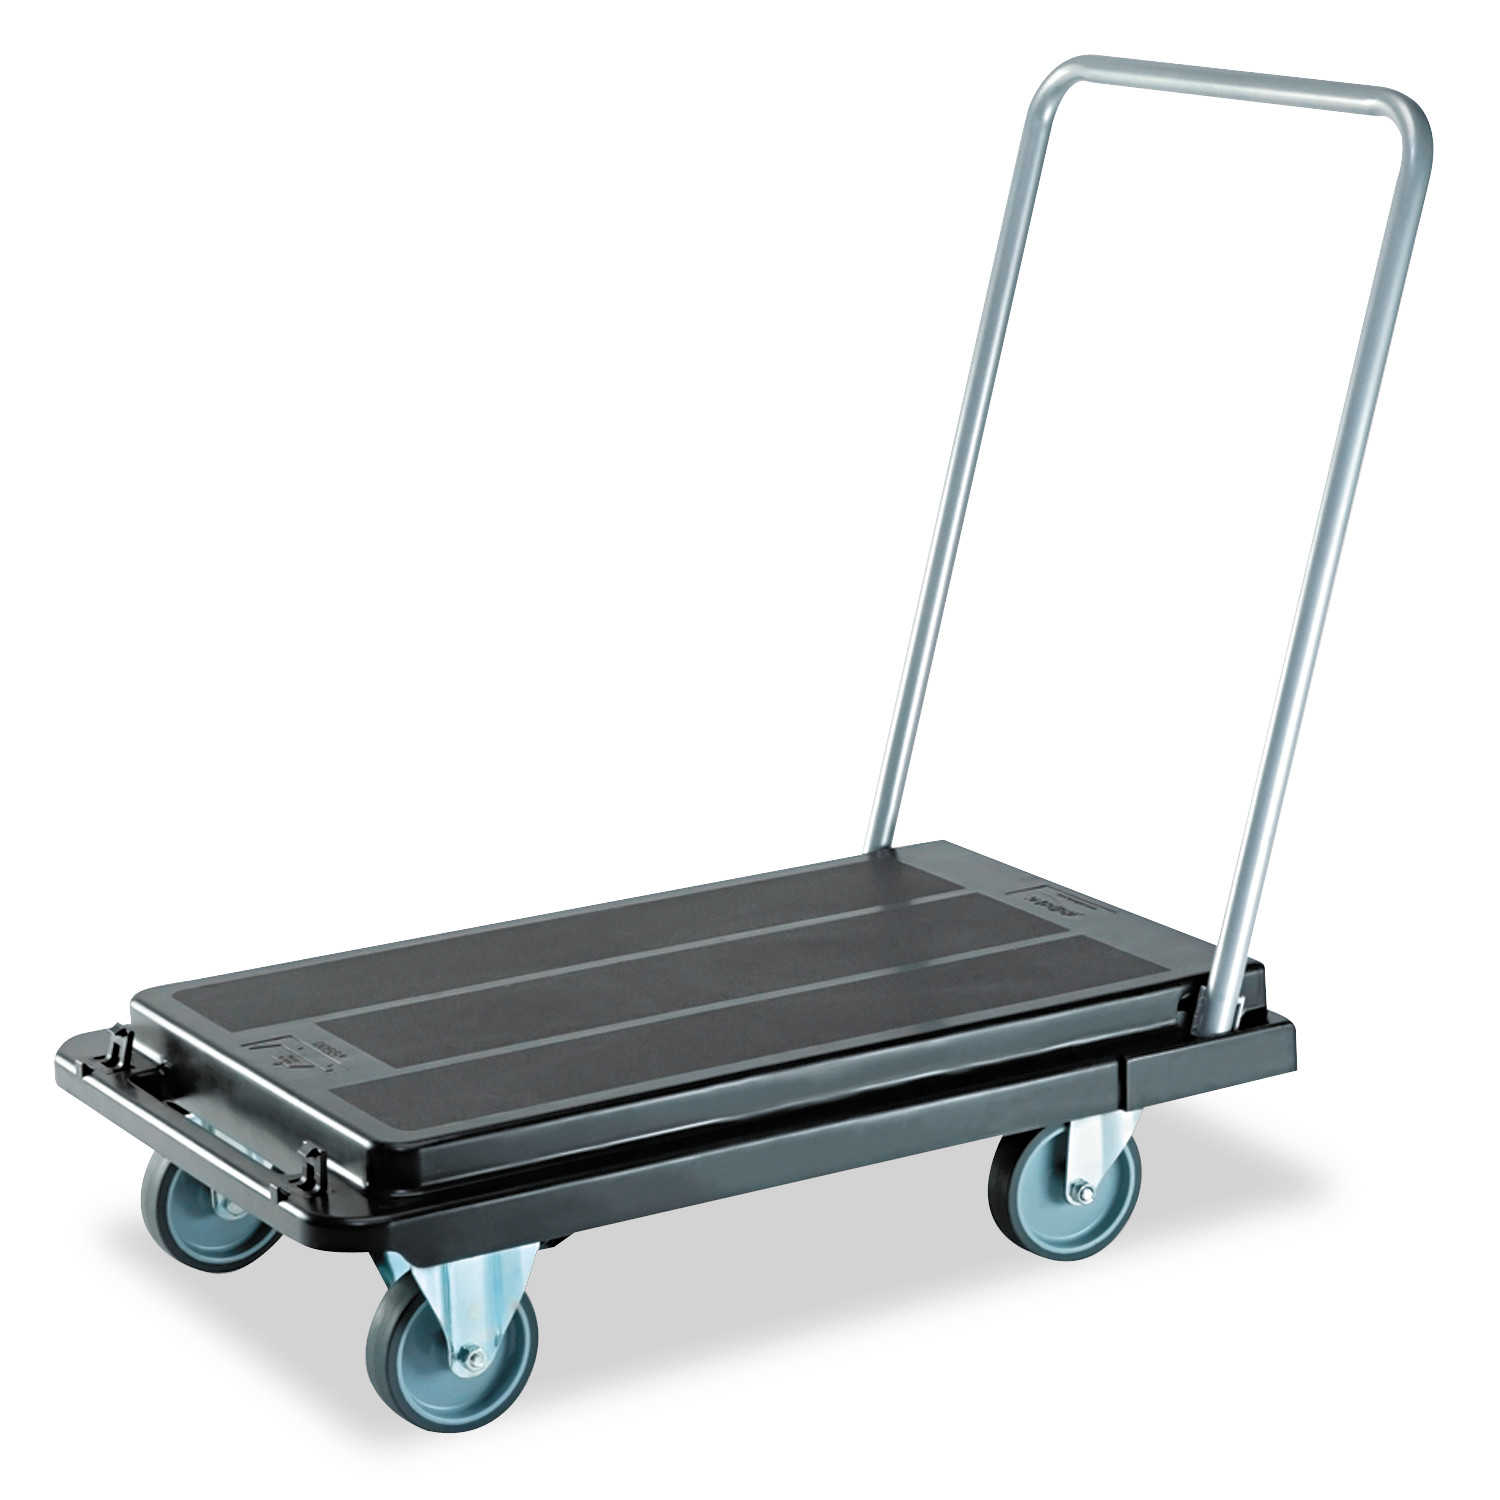 deflecto Heavy-Duty Platform Cart, 500lb Capacity, 21w x 32 1/2d x 37 1/2h, Black